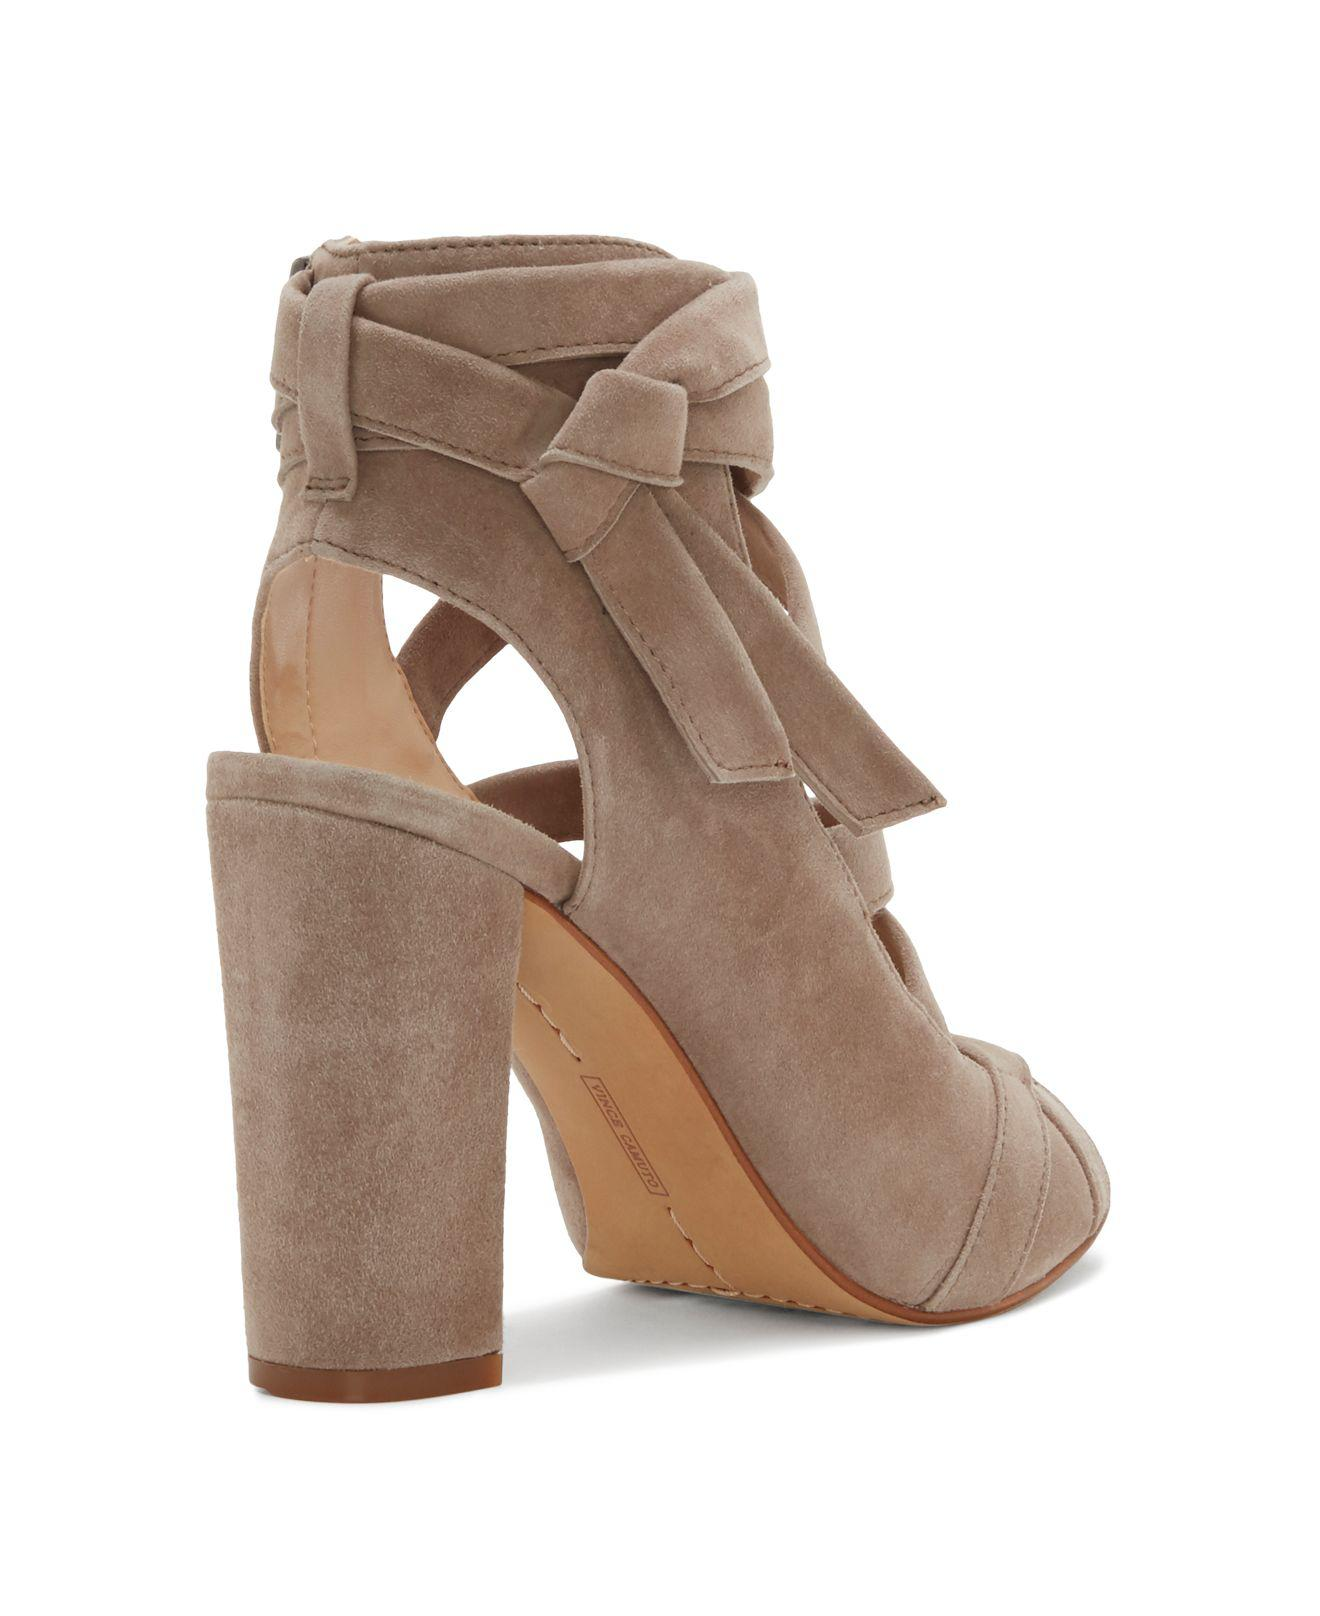 Vince Camuto Suede Sammson Crisscross Strappy High Heel